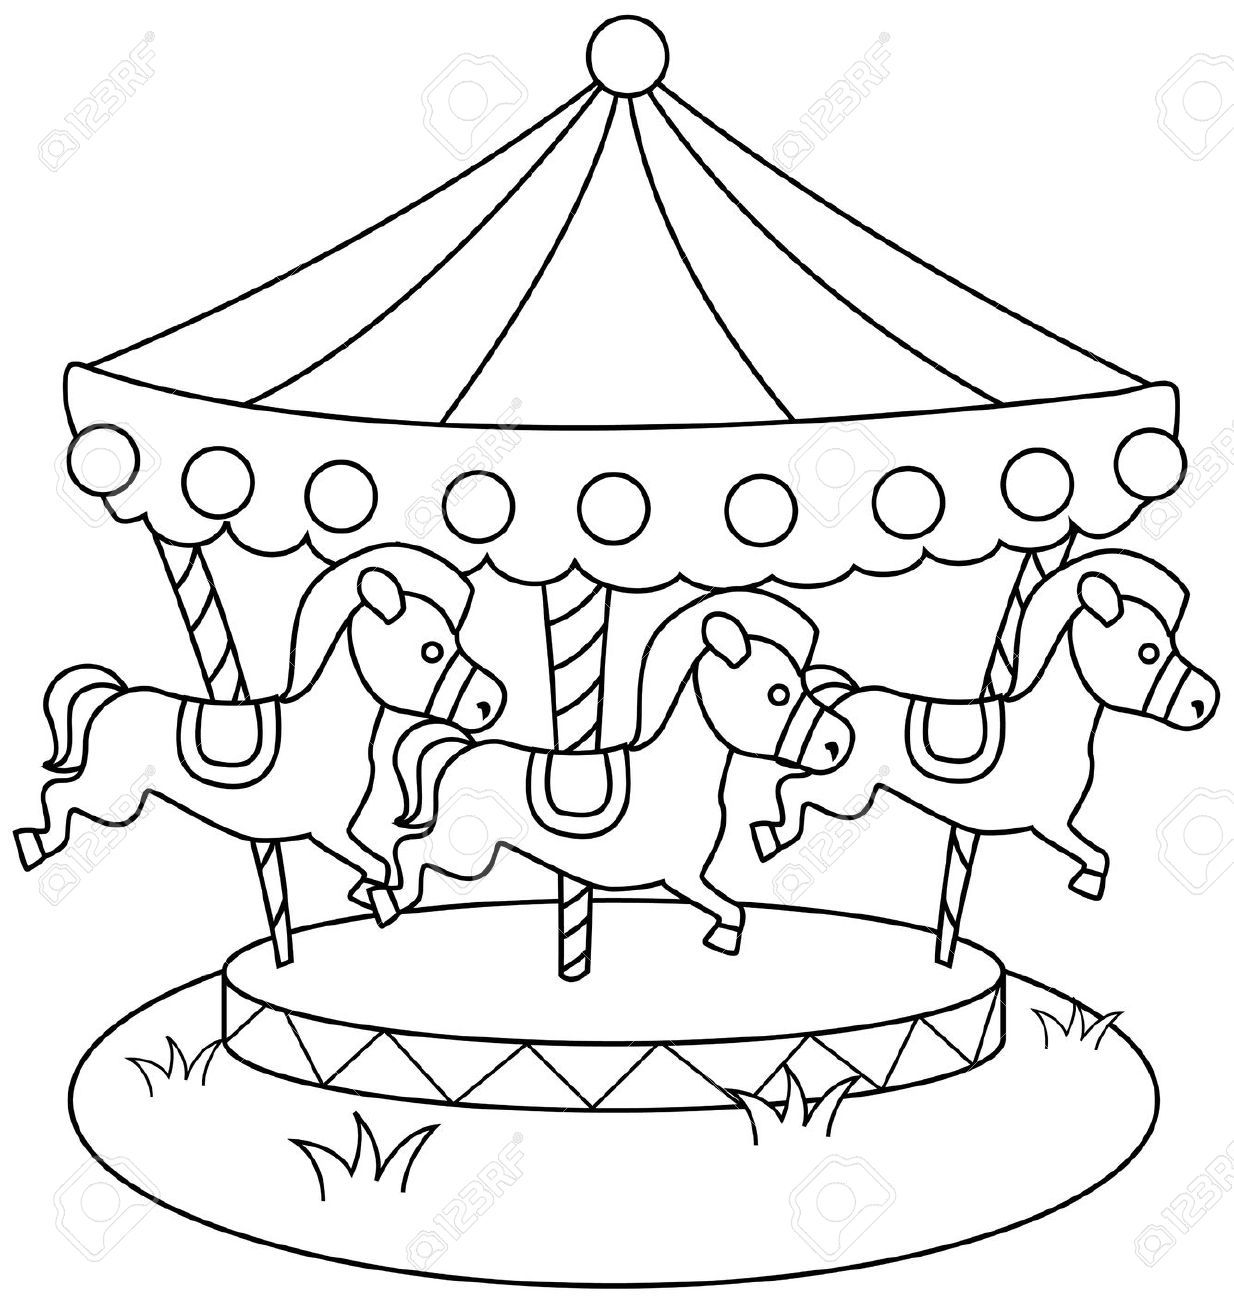 Carousel Coloring Pictures - Coloring Pages For Kids And For Adults ...